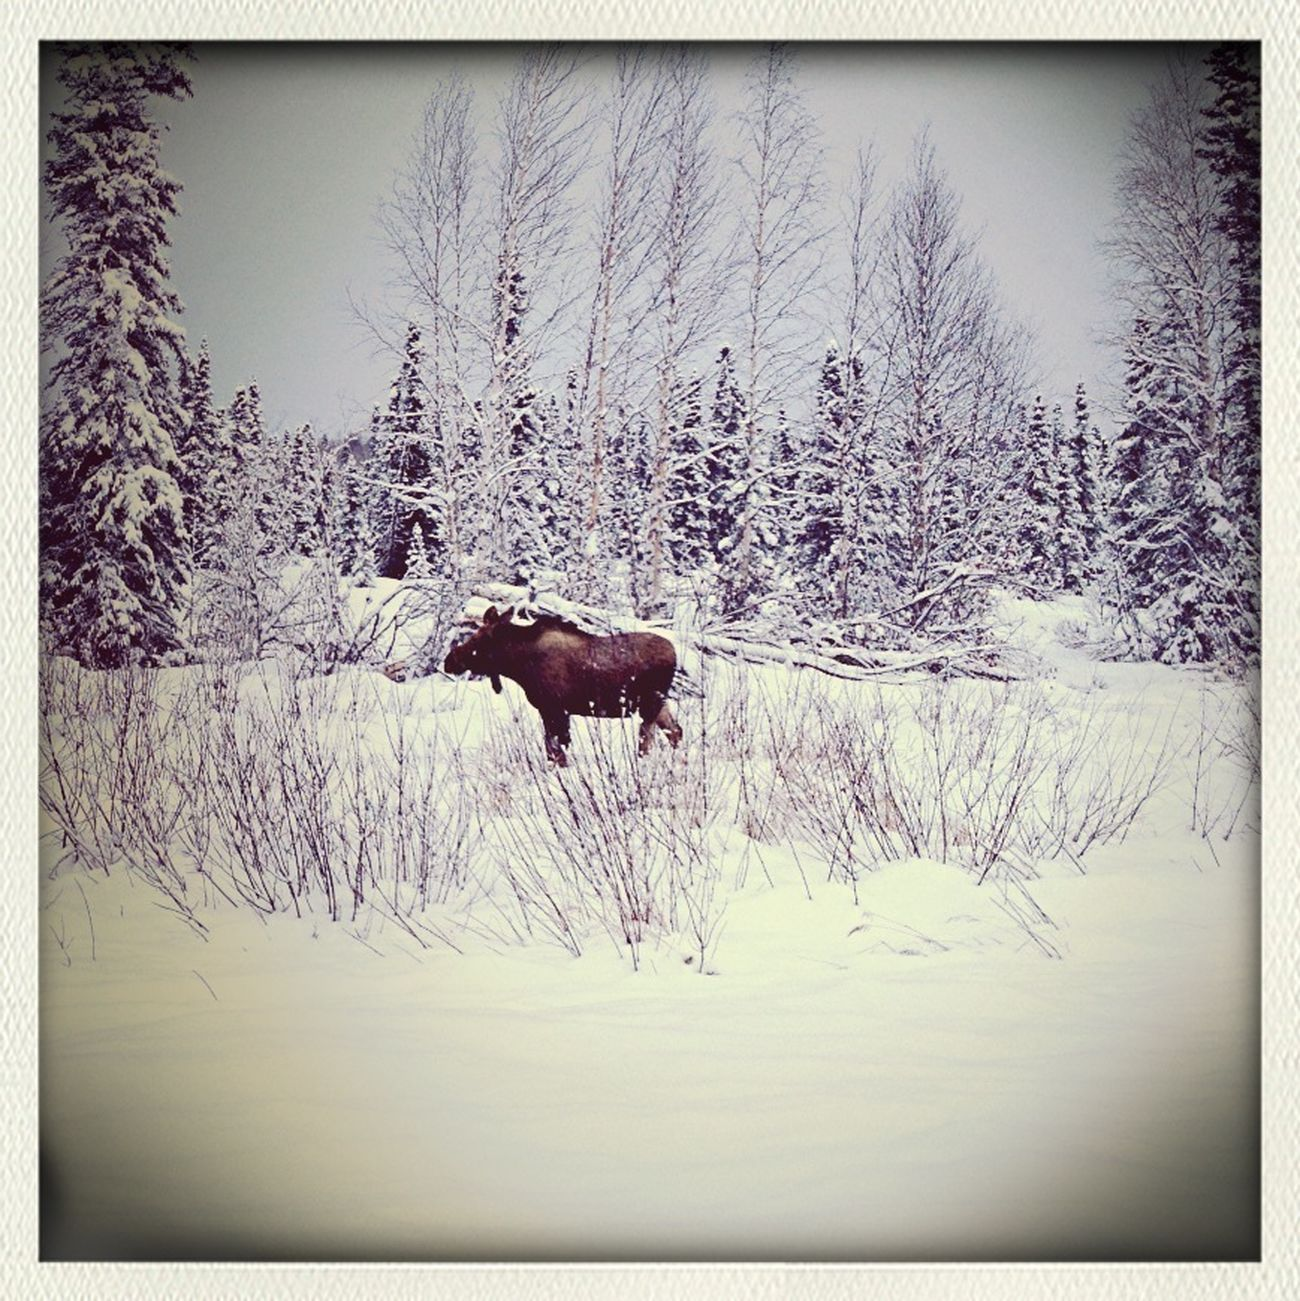 Road Trip-moose Sighting